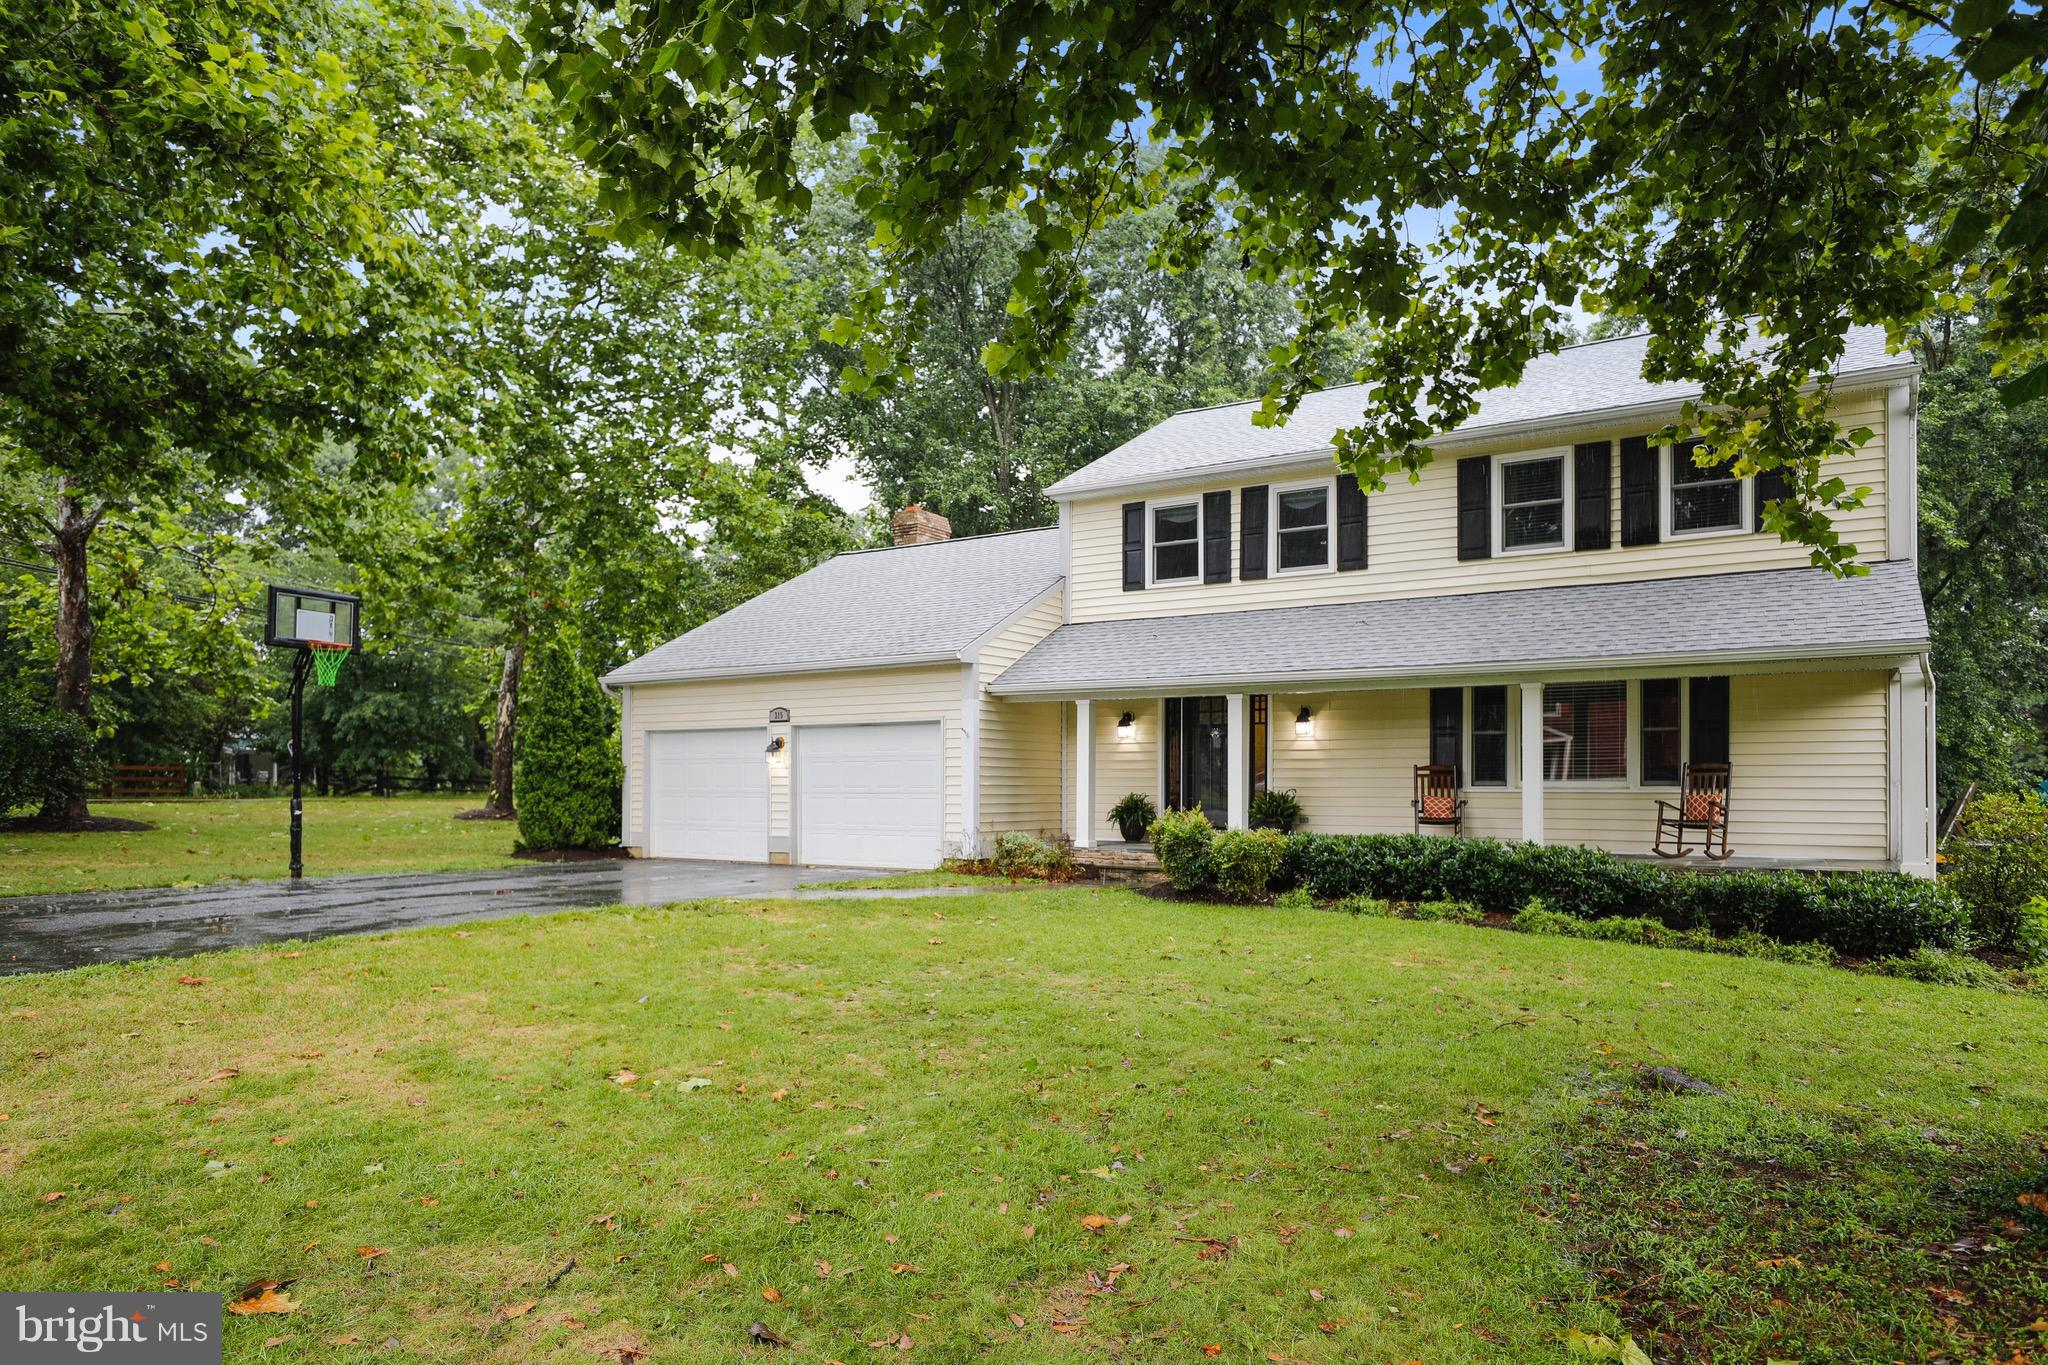 ** PRICE IMPROVEMENT ** Welcome home to this beautiful, 4 Bedroom/2.5 Bath Colonial in CHARTWELL. Walking distance to schools, Kinder Park, & St. Andrew's Swim & Tennis Club (no wait list for Chartwell). NEW ROOF ('18) * SS Appliances * Granite Countertops * Hardwood Floors * Built Ins * Fire Pit * Wood FP * Deck * Fenced Yard * Easy Access to I-97/Rt.3/100